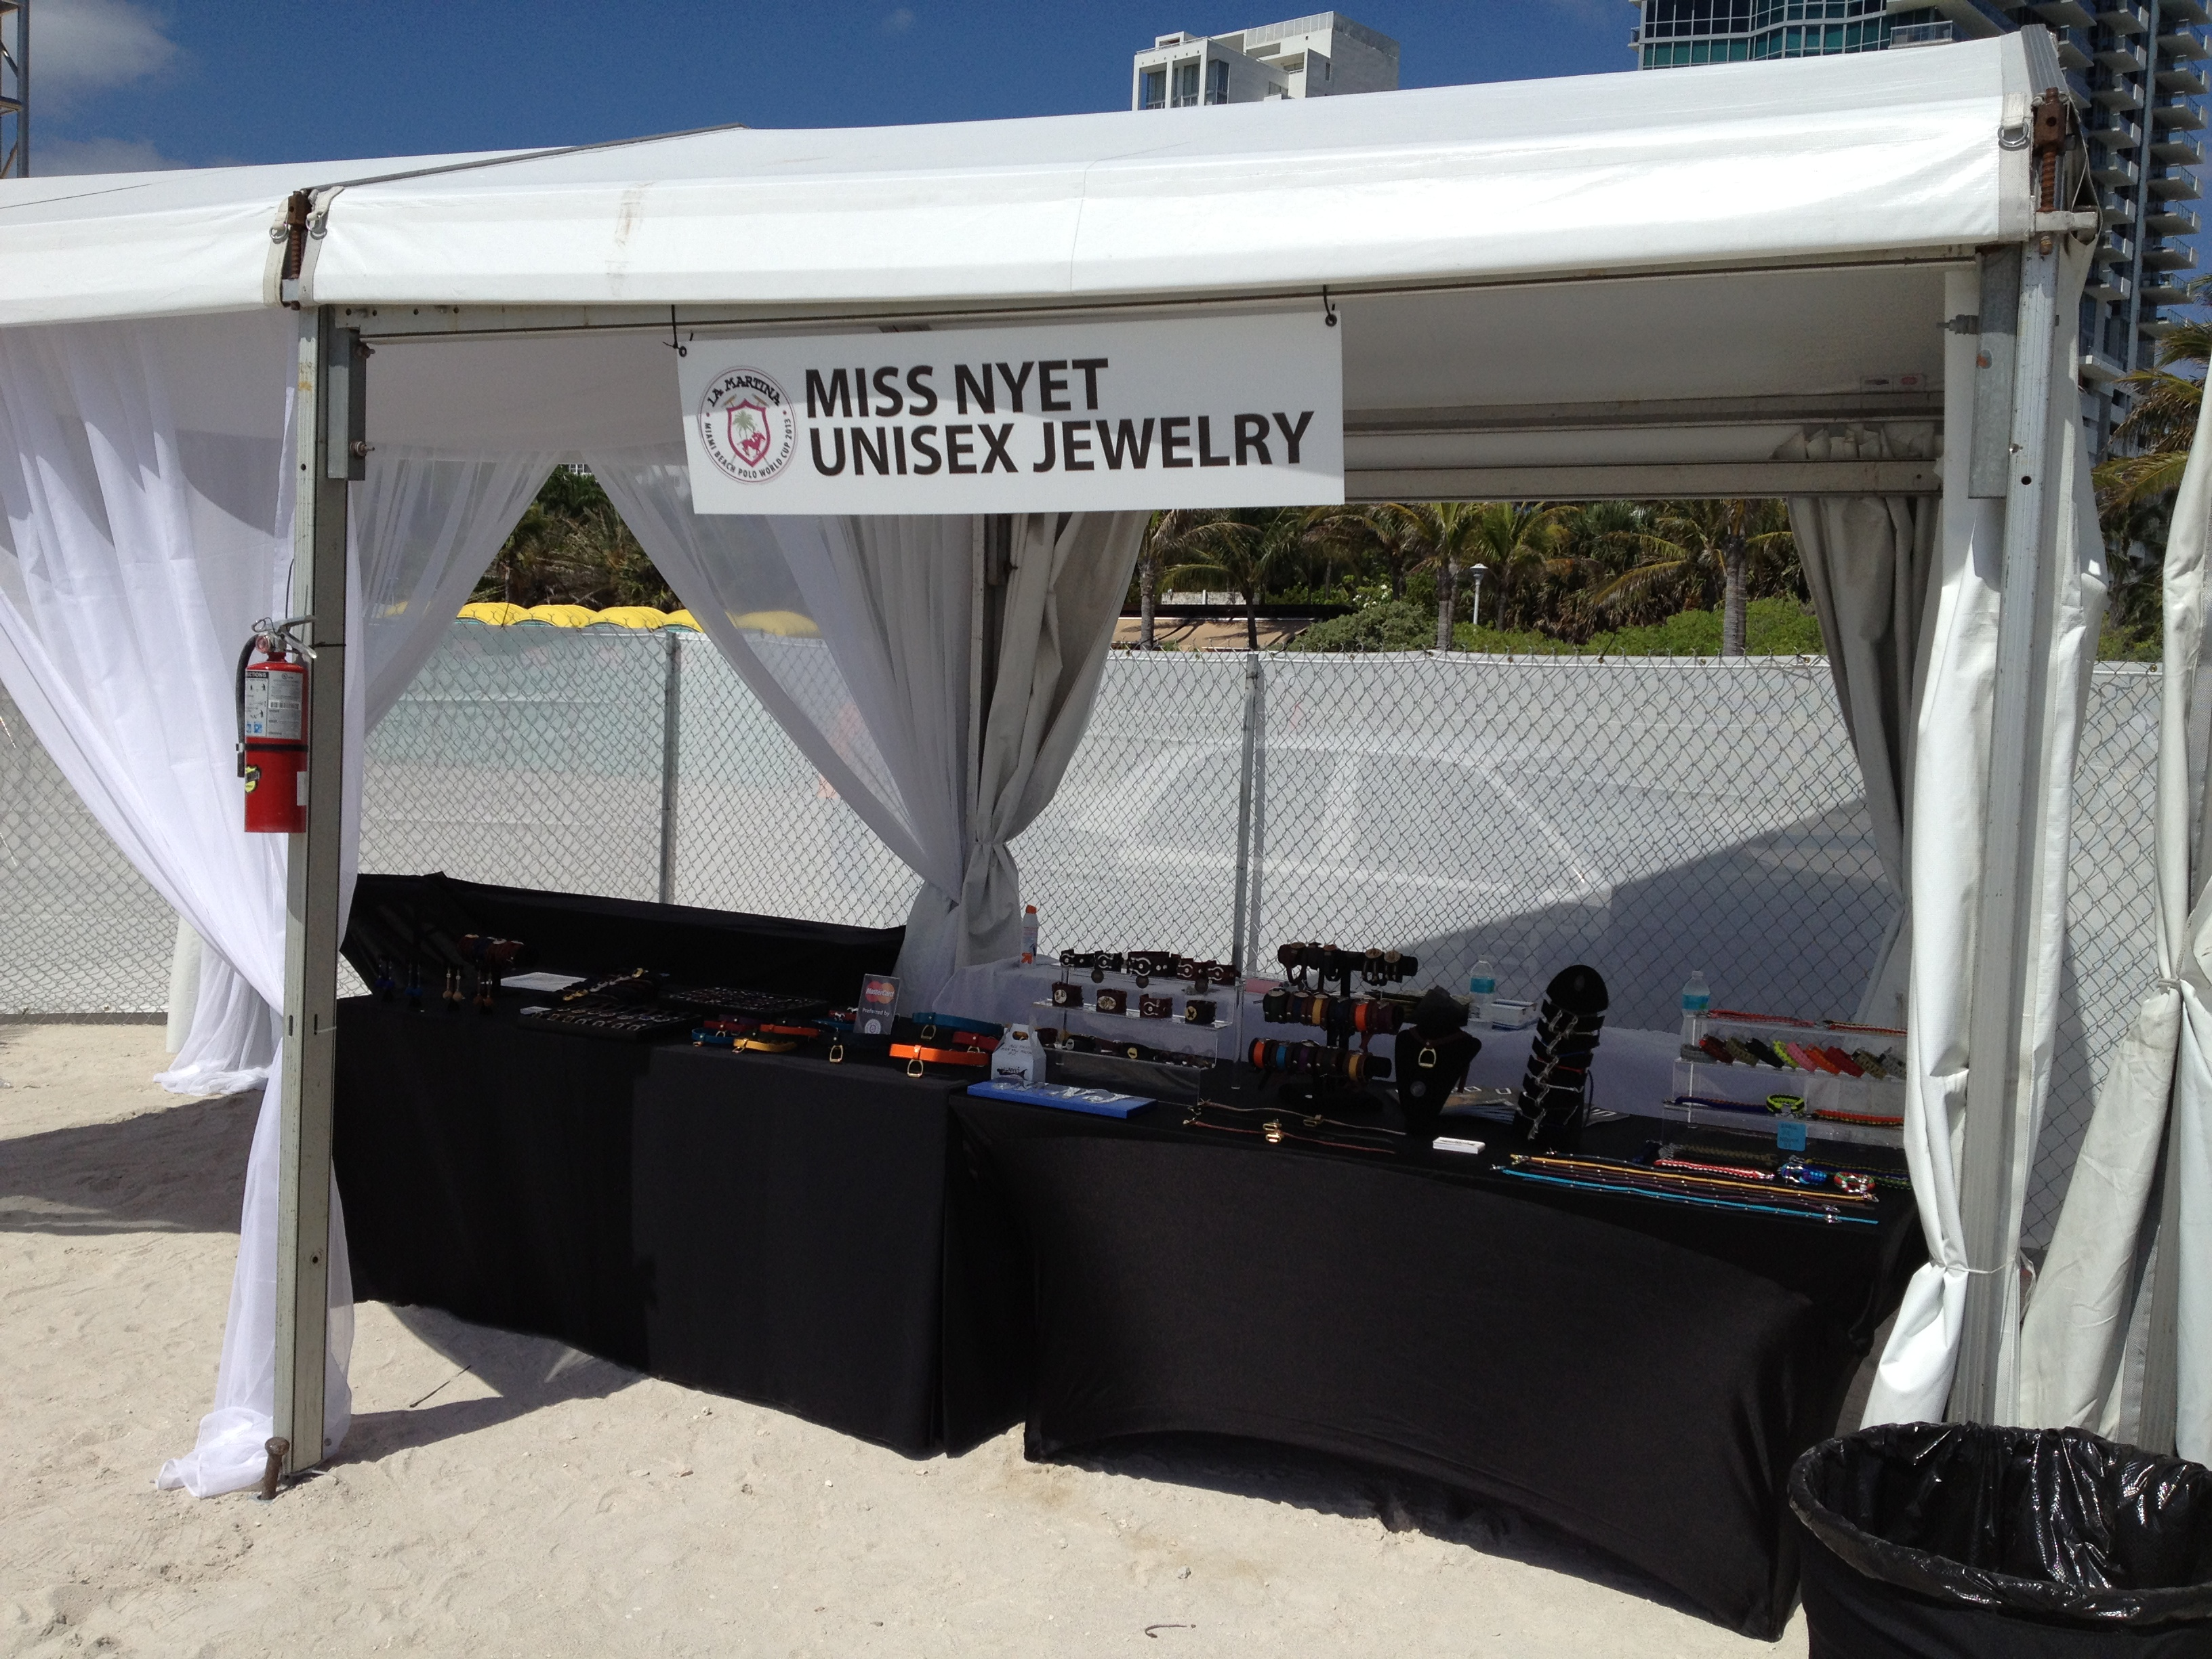 Miss Nyet Jewelry booth